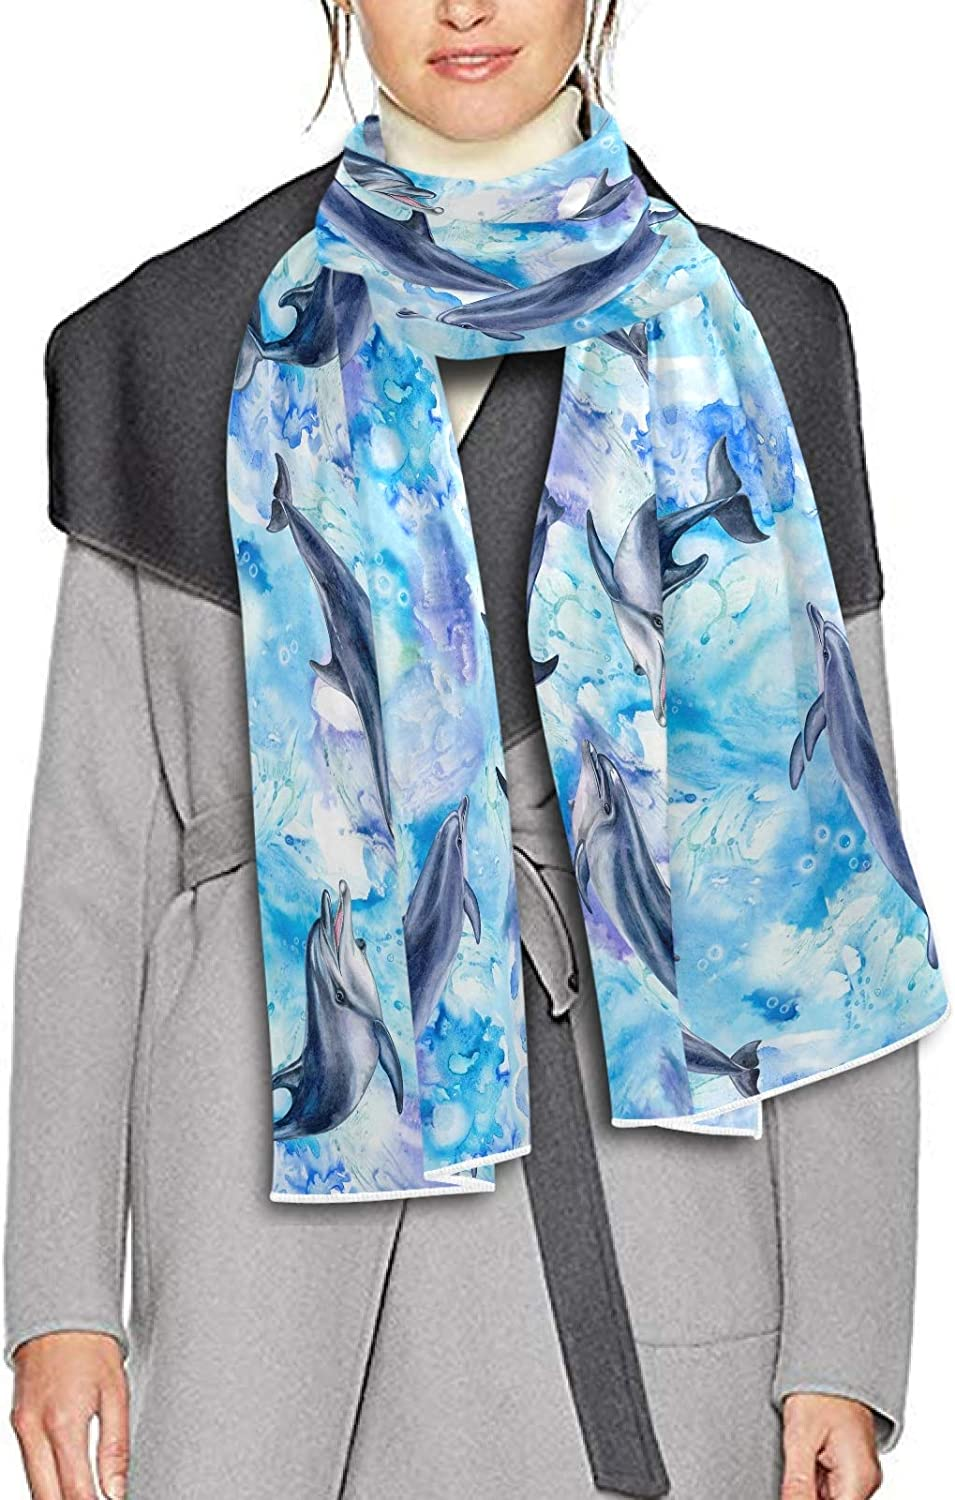 Scarf for Women and Men Sea Blue Dolphins Life Blanket Shawl Scarves Wraps Soft Winter Large Scarves Lightweight